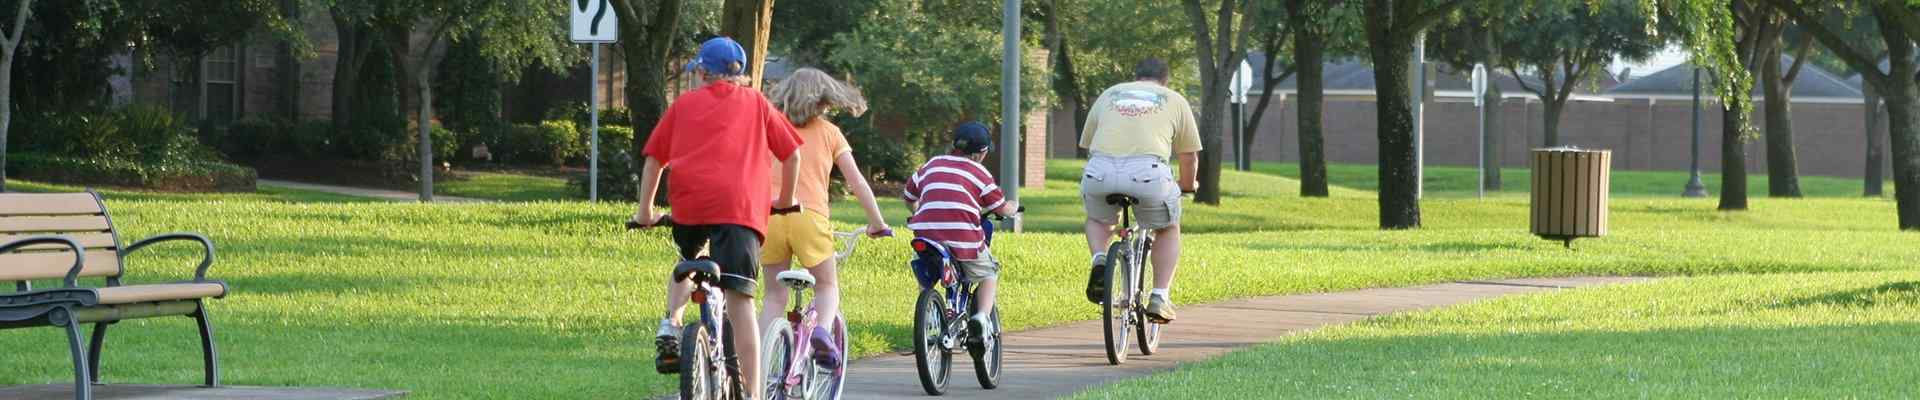 a family on bikes in a park in bedford texas